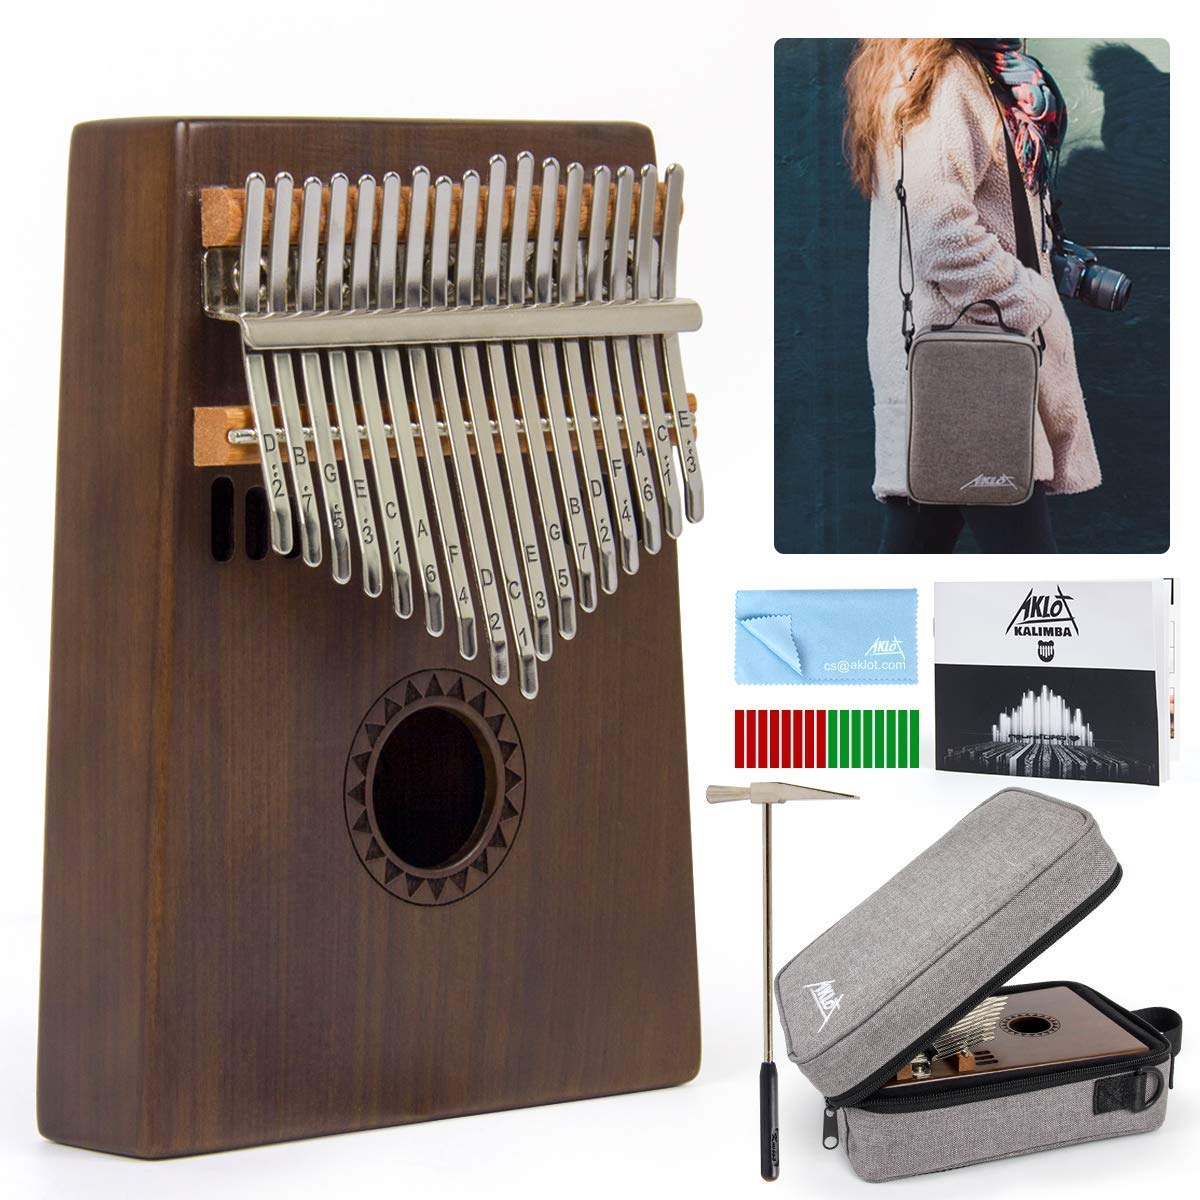 AKLOT Kalimba 17 Key, Solid Wood Thumb Piano Note Carved Starter Finger Piano with Kalimba Case Tune Hammer Study Booklet Stickers by AKLOT